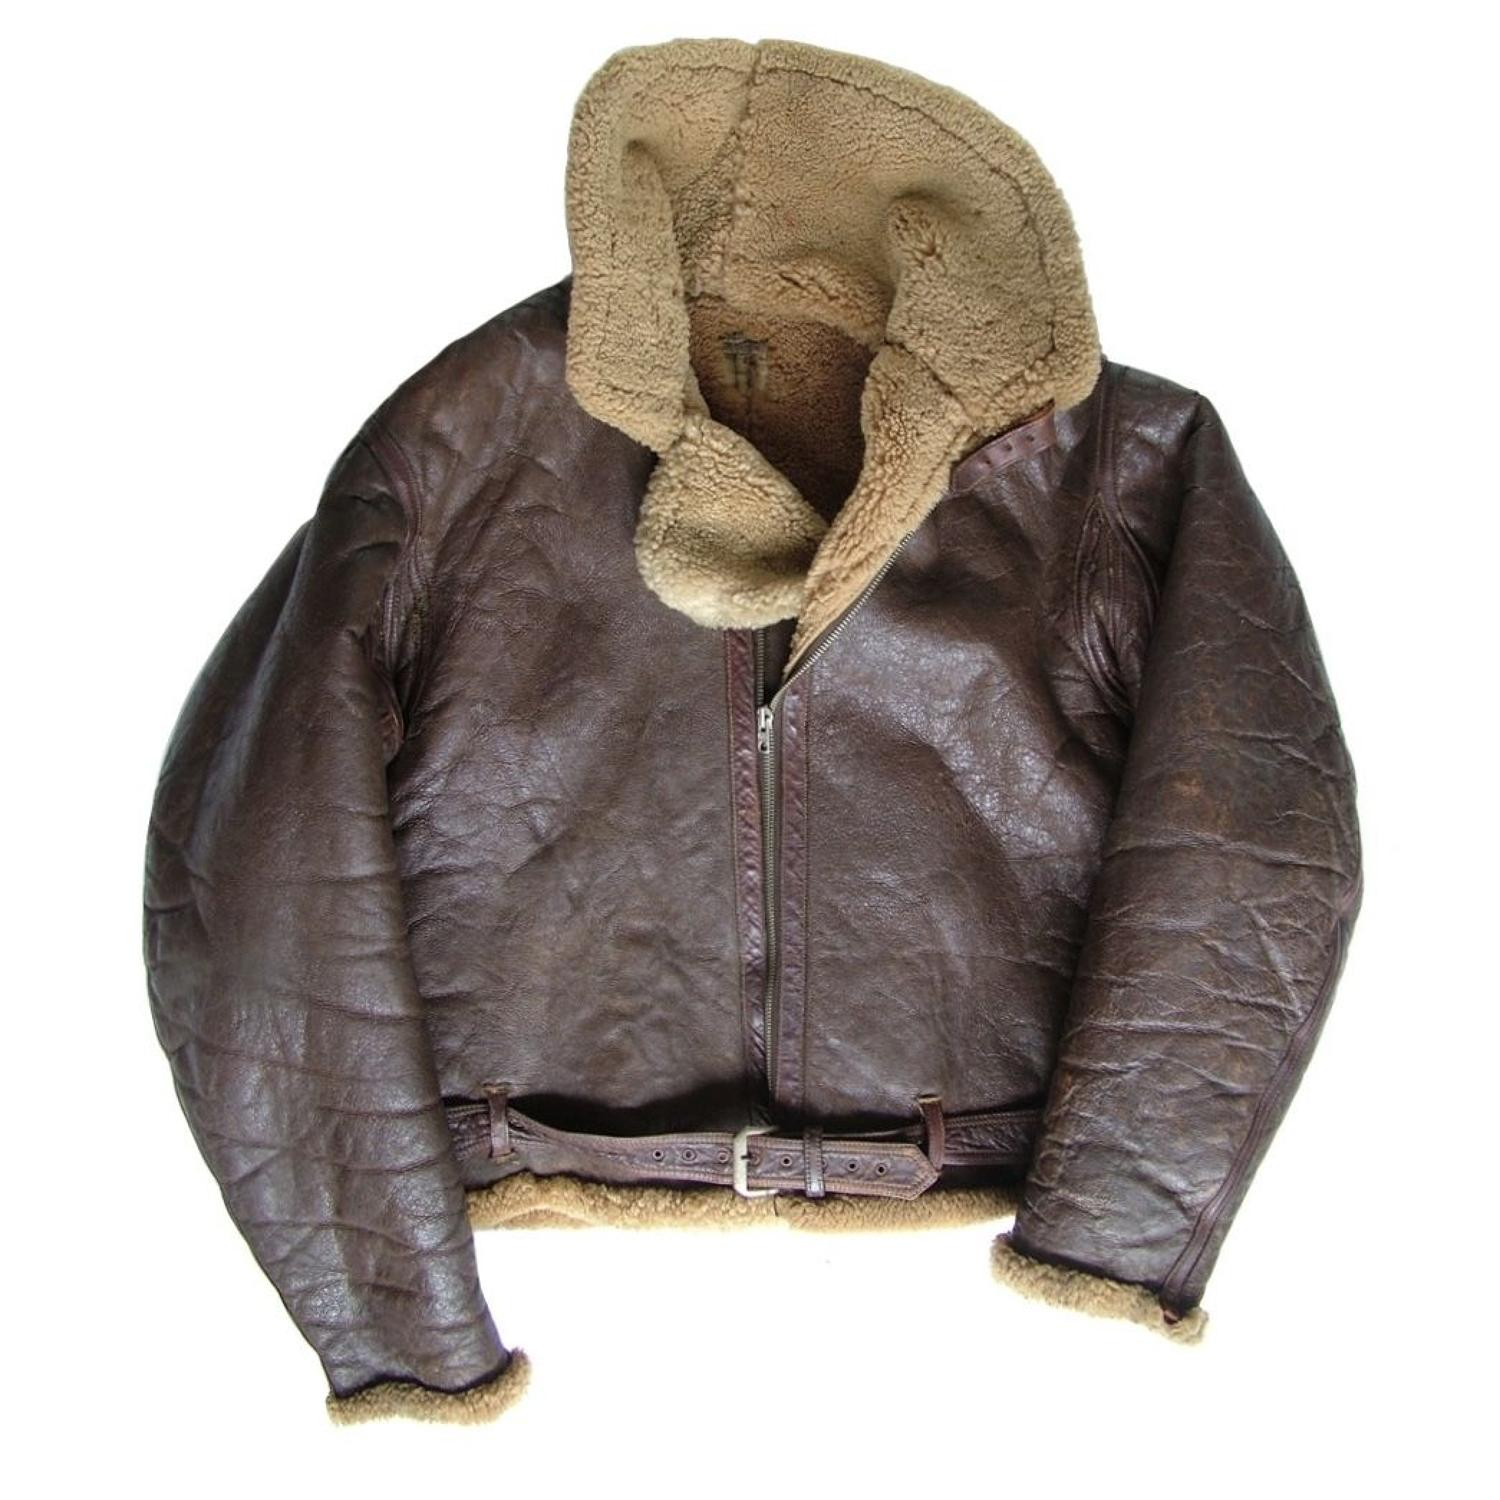 RAF Irvin flying jacket - very early example